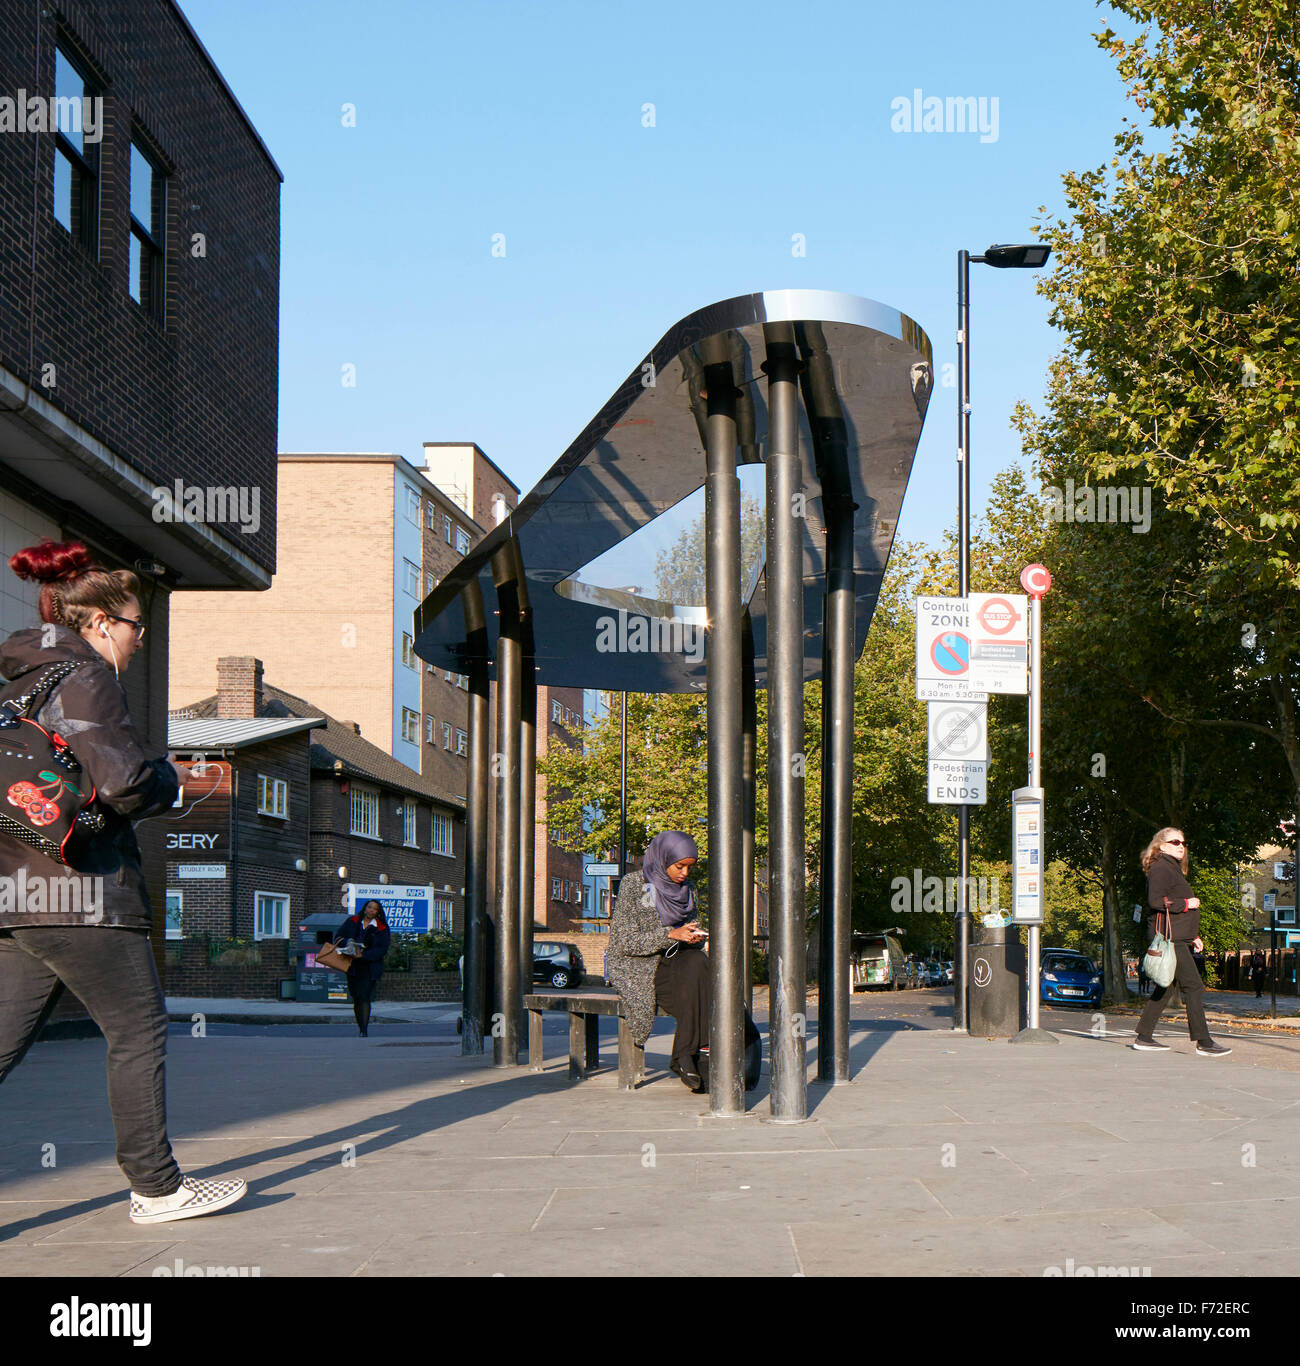 Pedestrianised area of Binfield Rod with bus shelter. Binfield Road Bus Shelter, Stockwell Framework Masterplan, - Stock Image